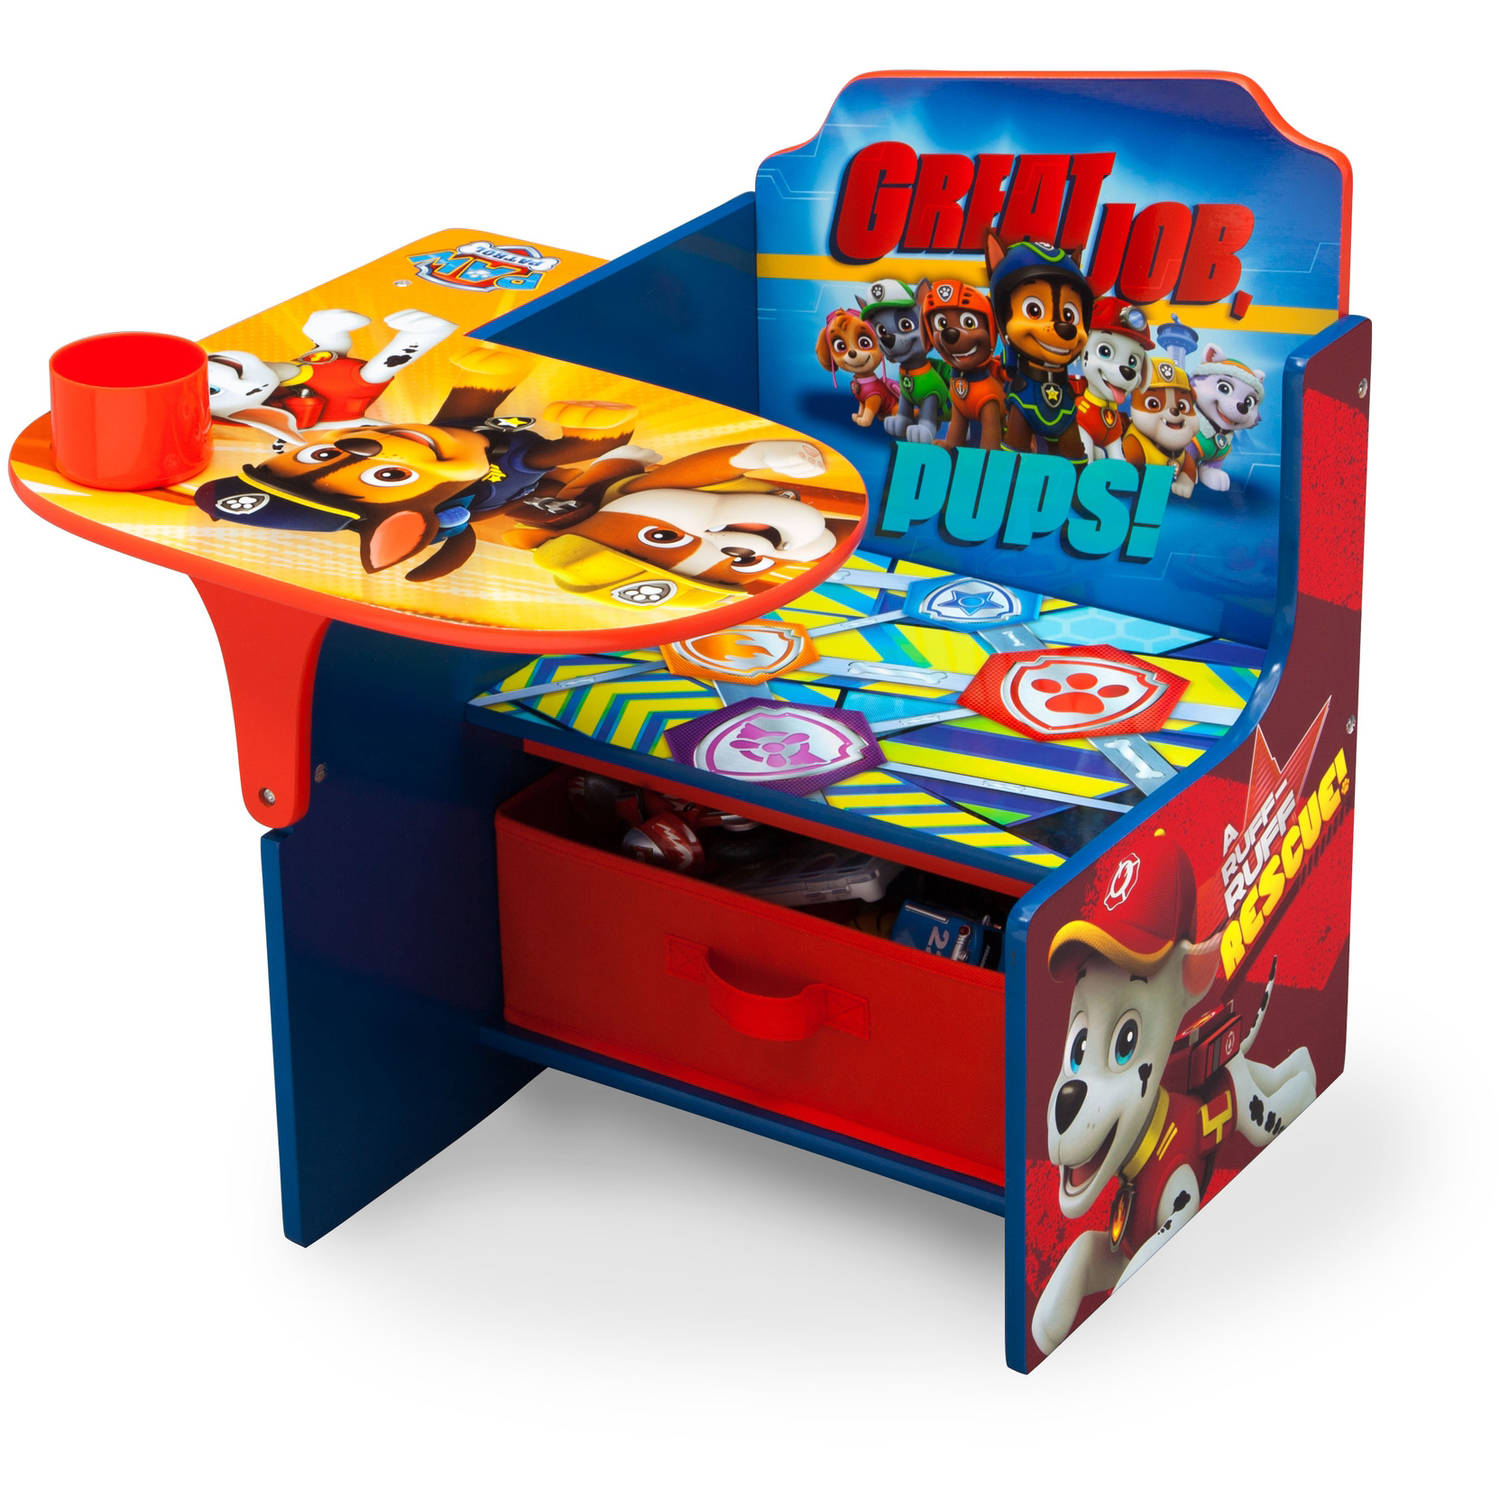 Nick Jr Paw Patrol Chair Desk With Storage Bin By Delta Children Walmart Com